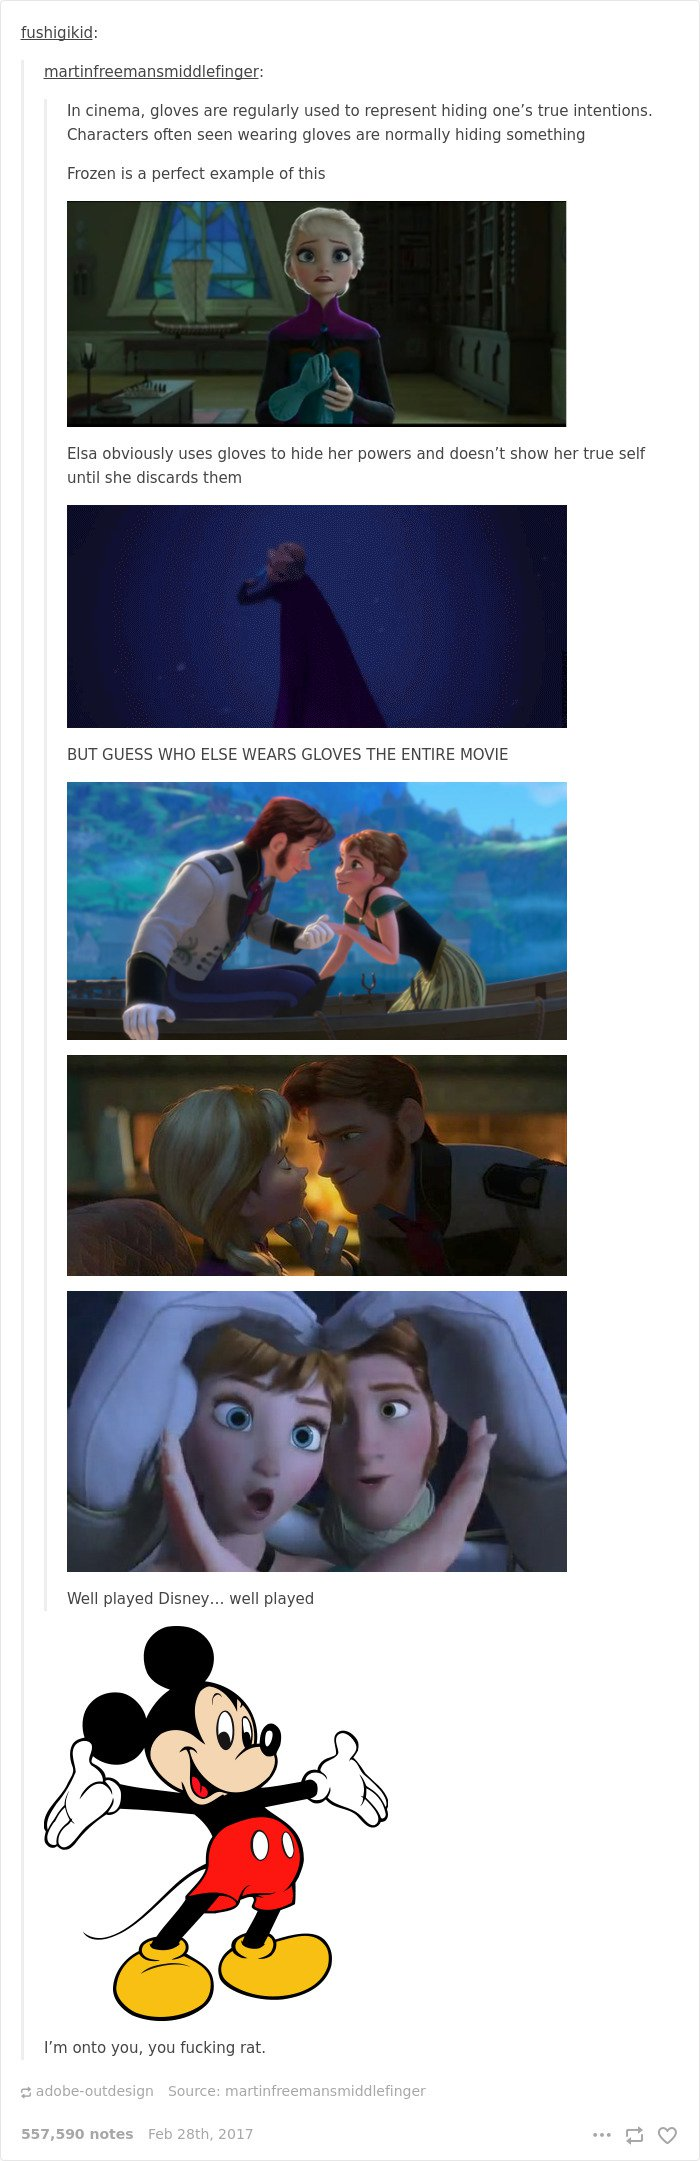 disney-tumblr-posts gloves hiding intentions